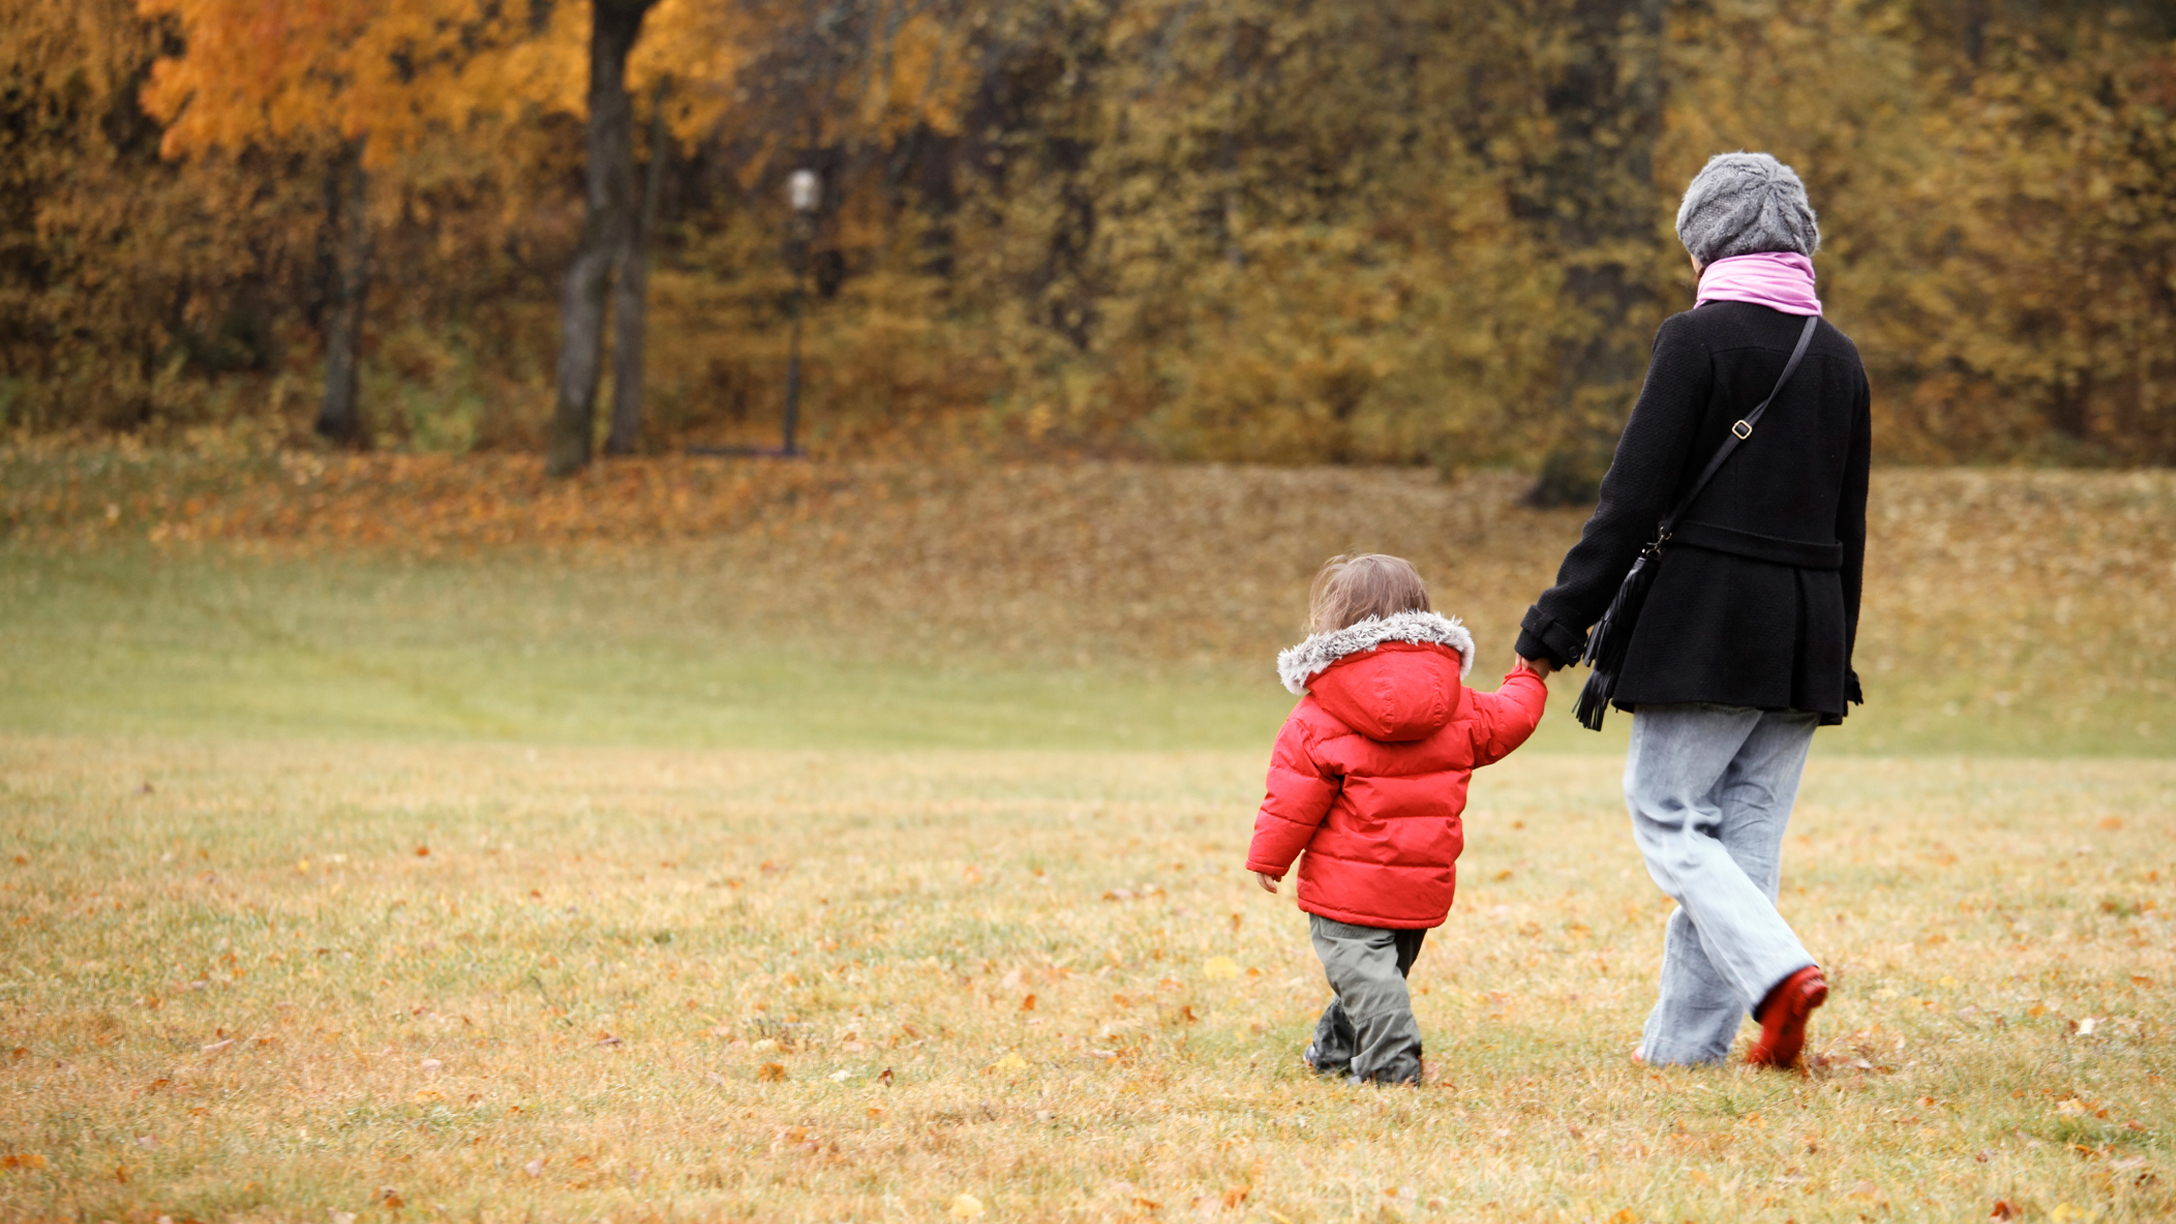 7 Things Only Shy Moms Know About Parenting